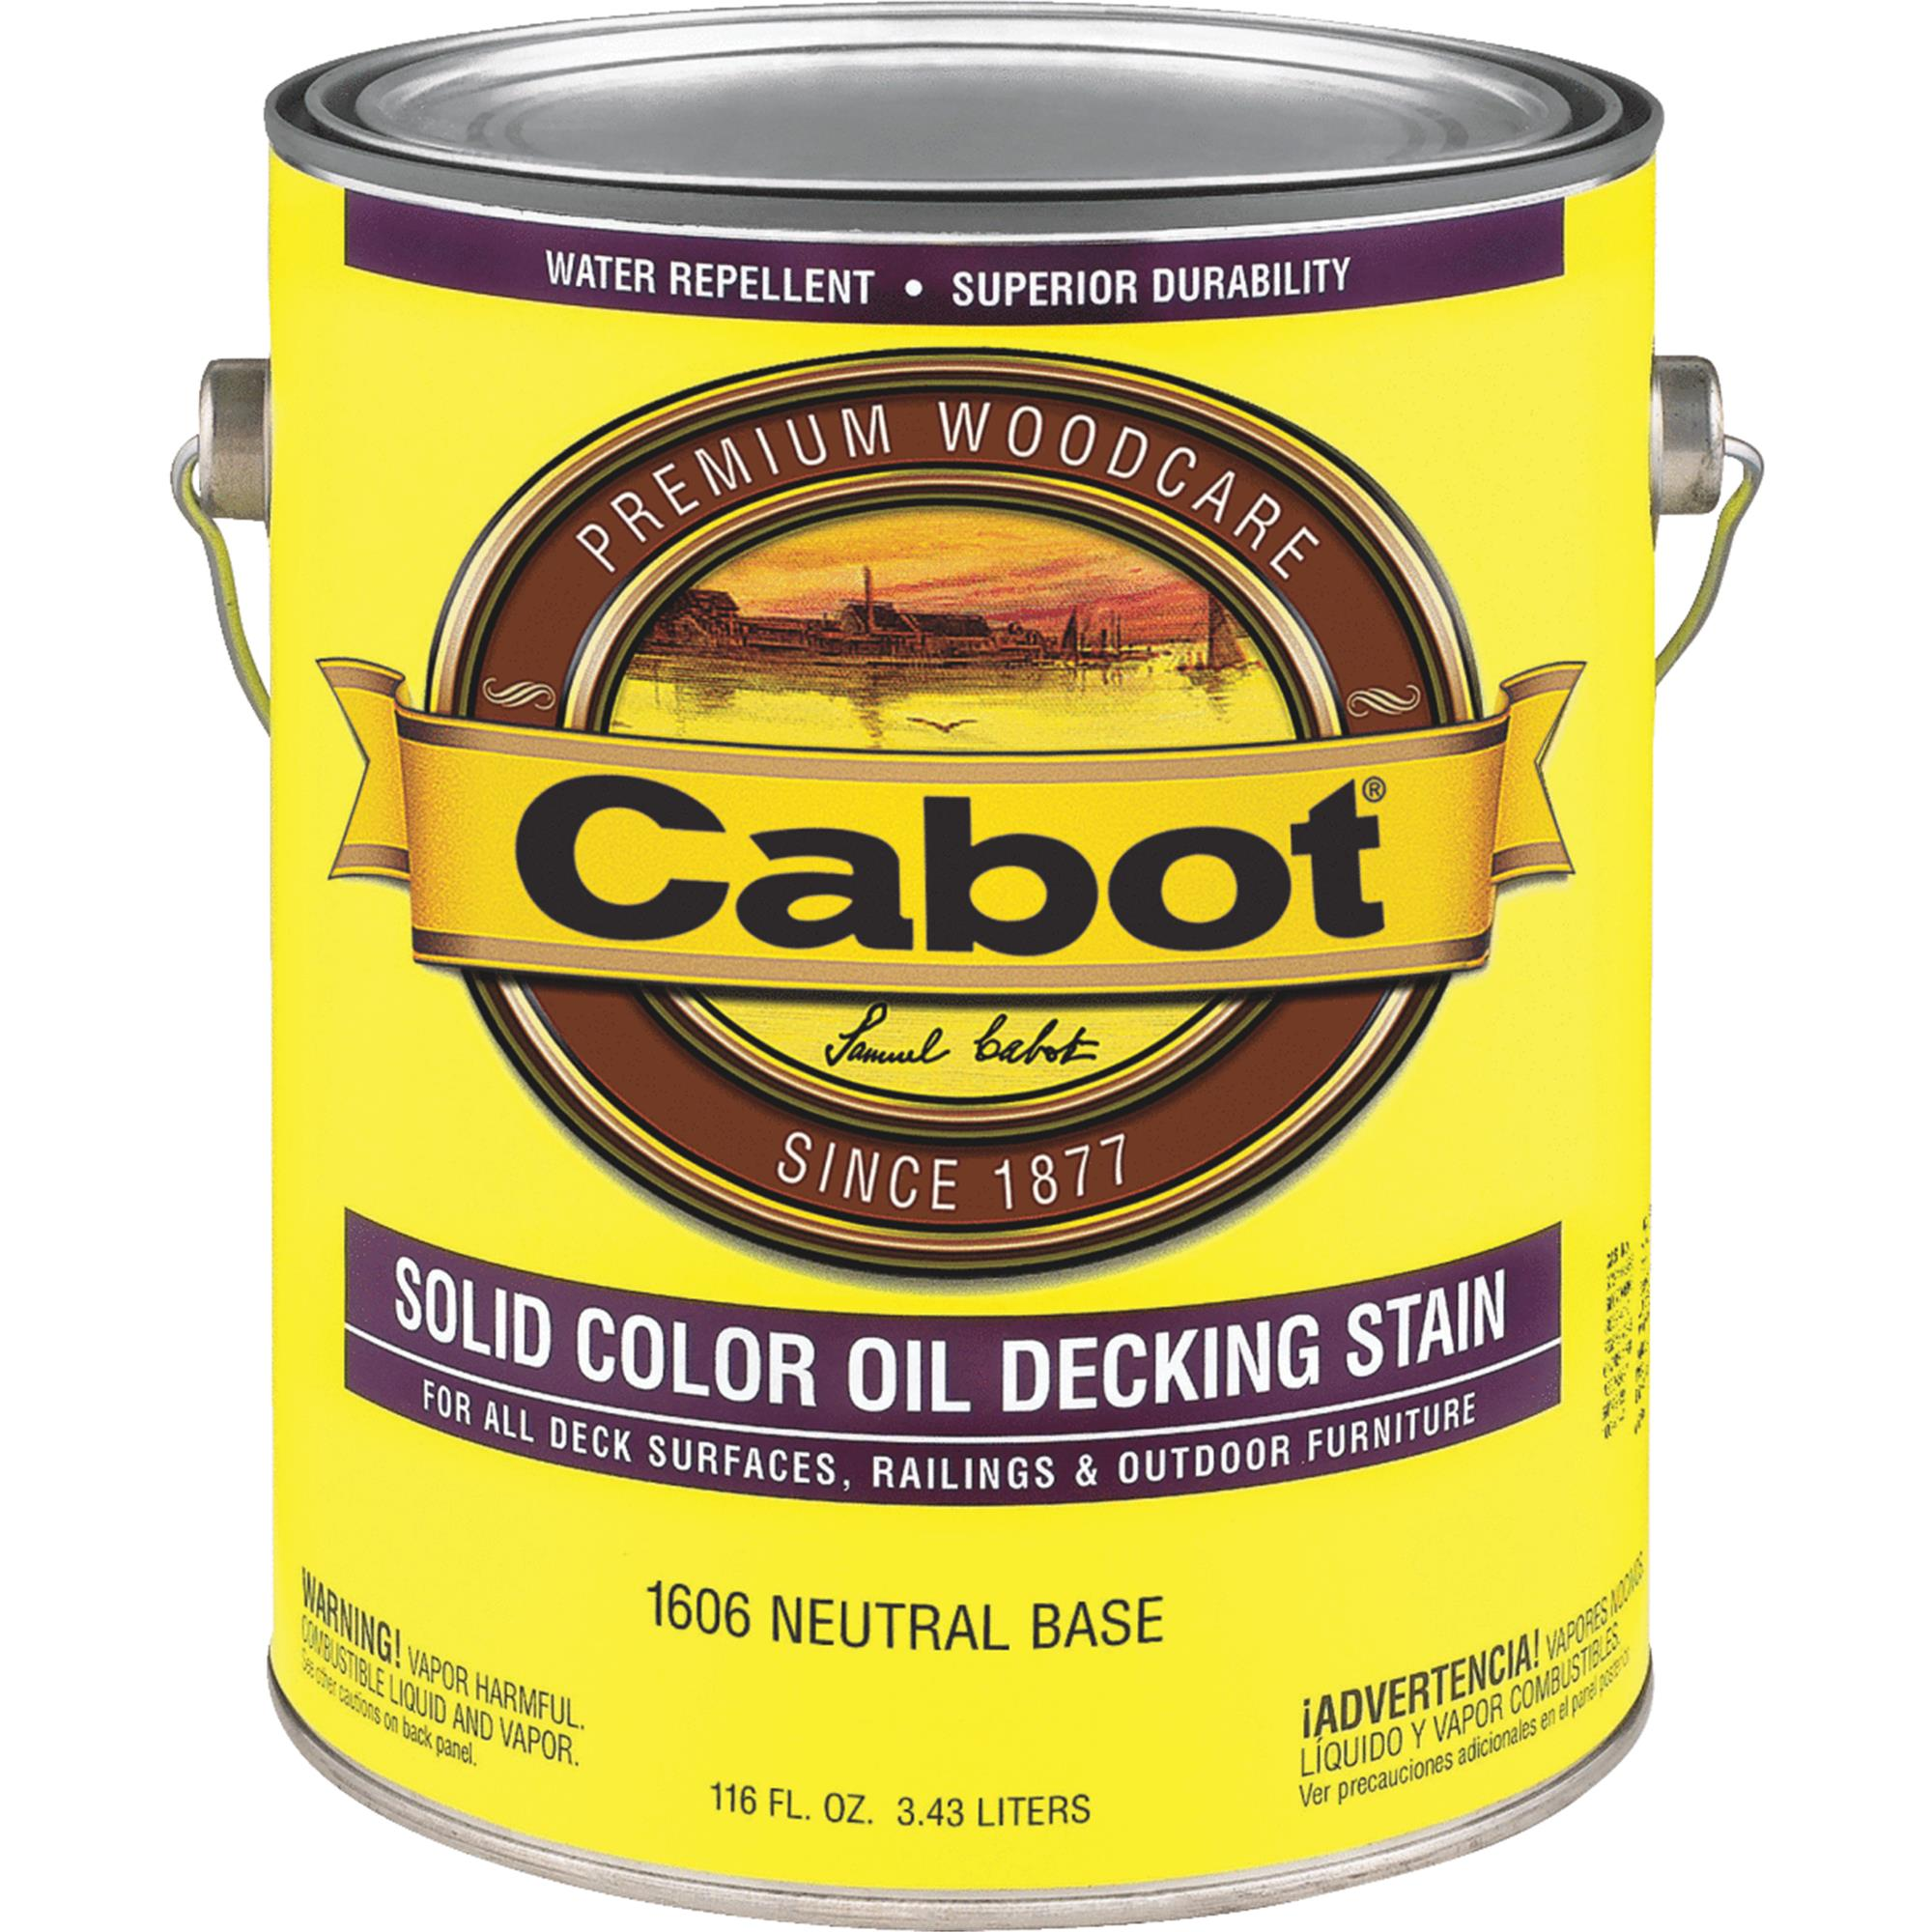 Cabot Solid Color Oil Deck Stain